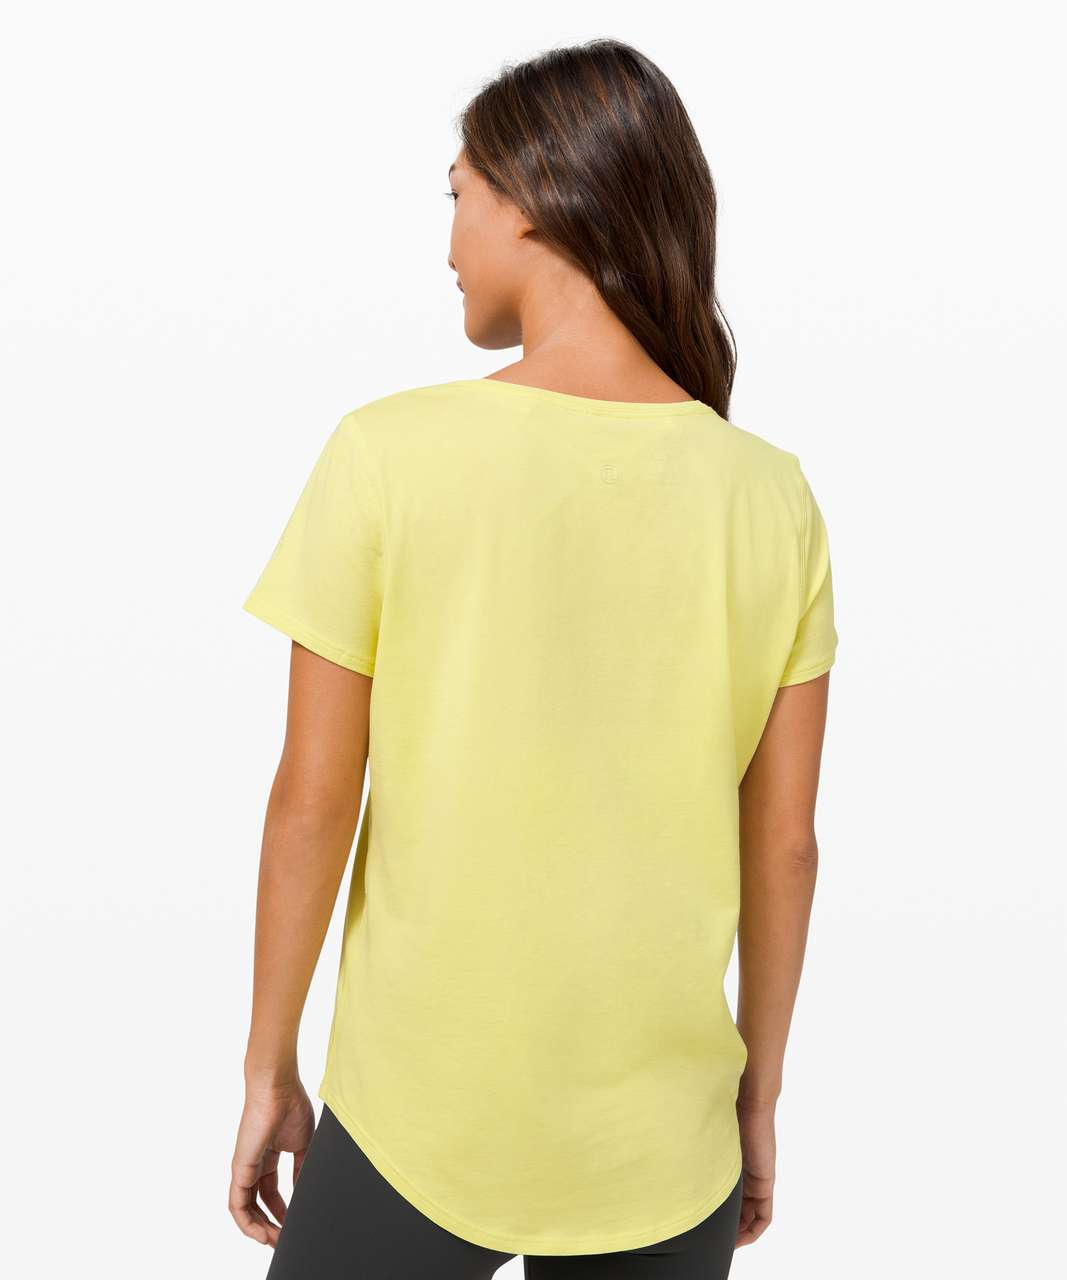 Lululemon Love Crew III - Lemon Vibe